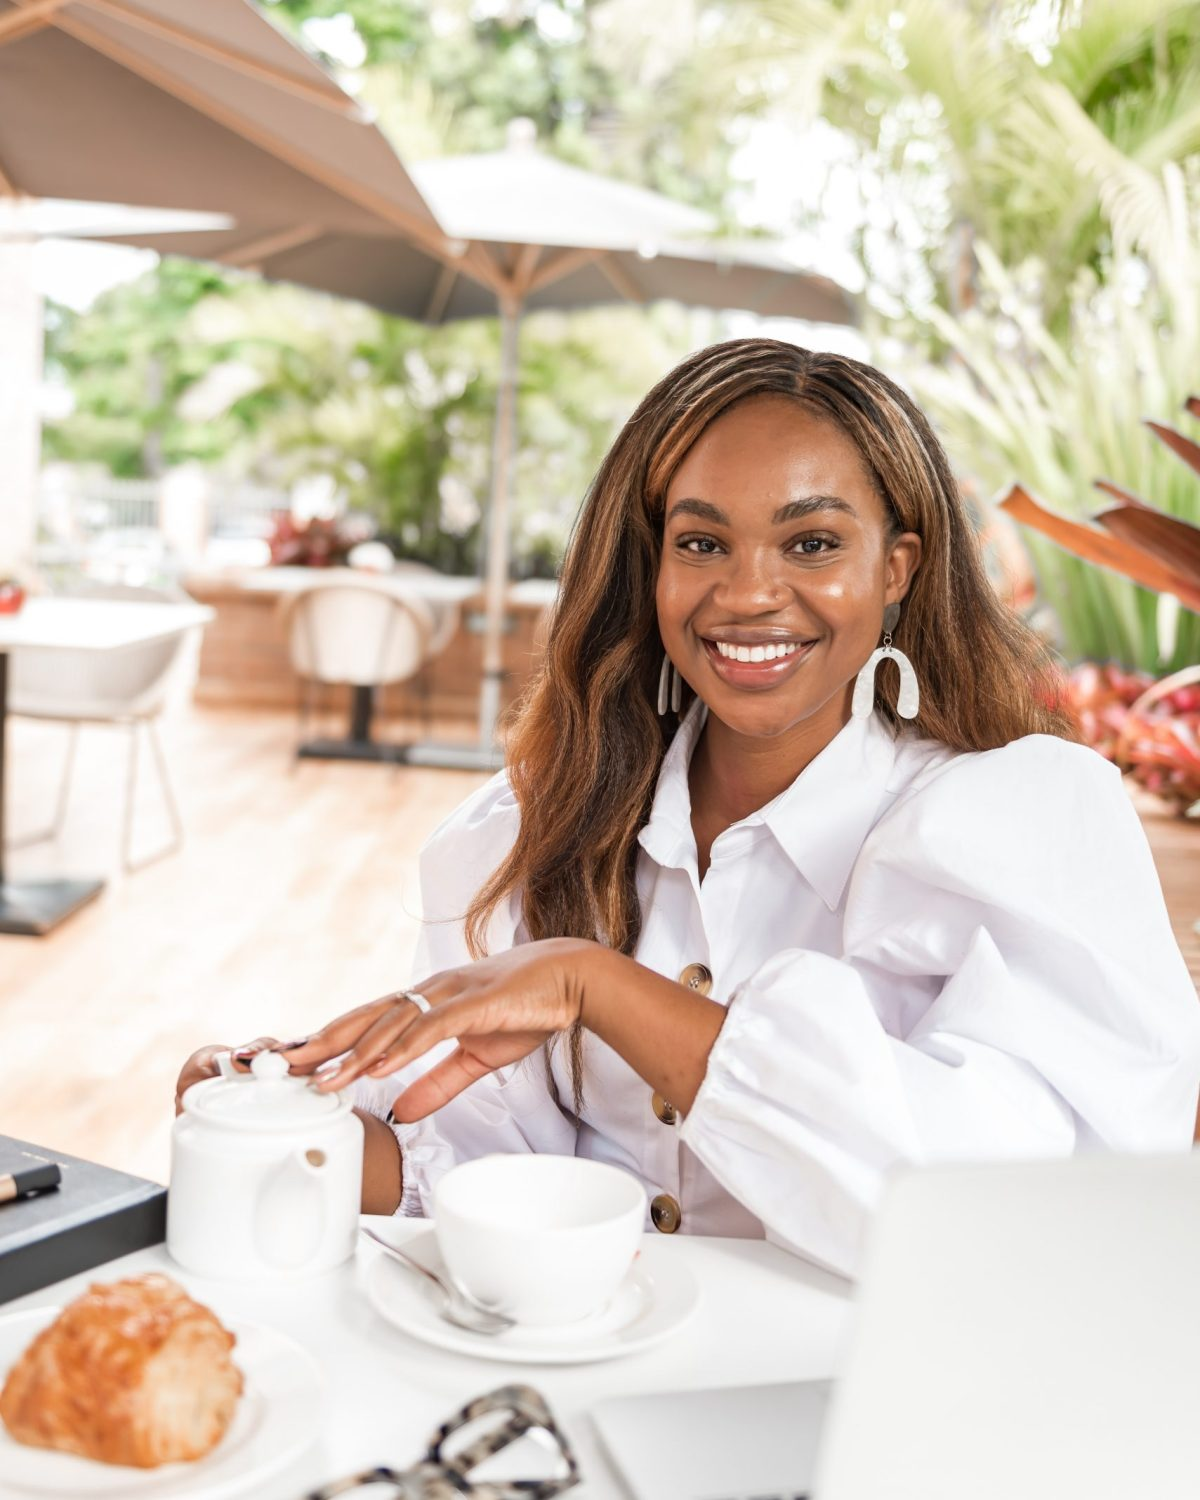 Ijeoma Kola sitting at café for tea, with laptop and glasses on table - Blog about social media and mental health